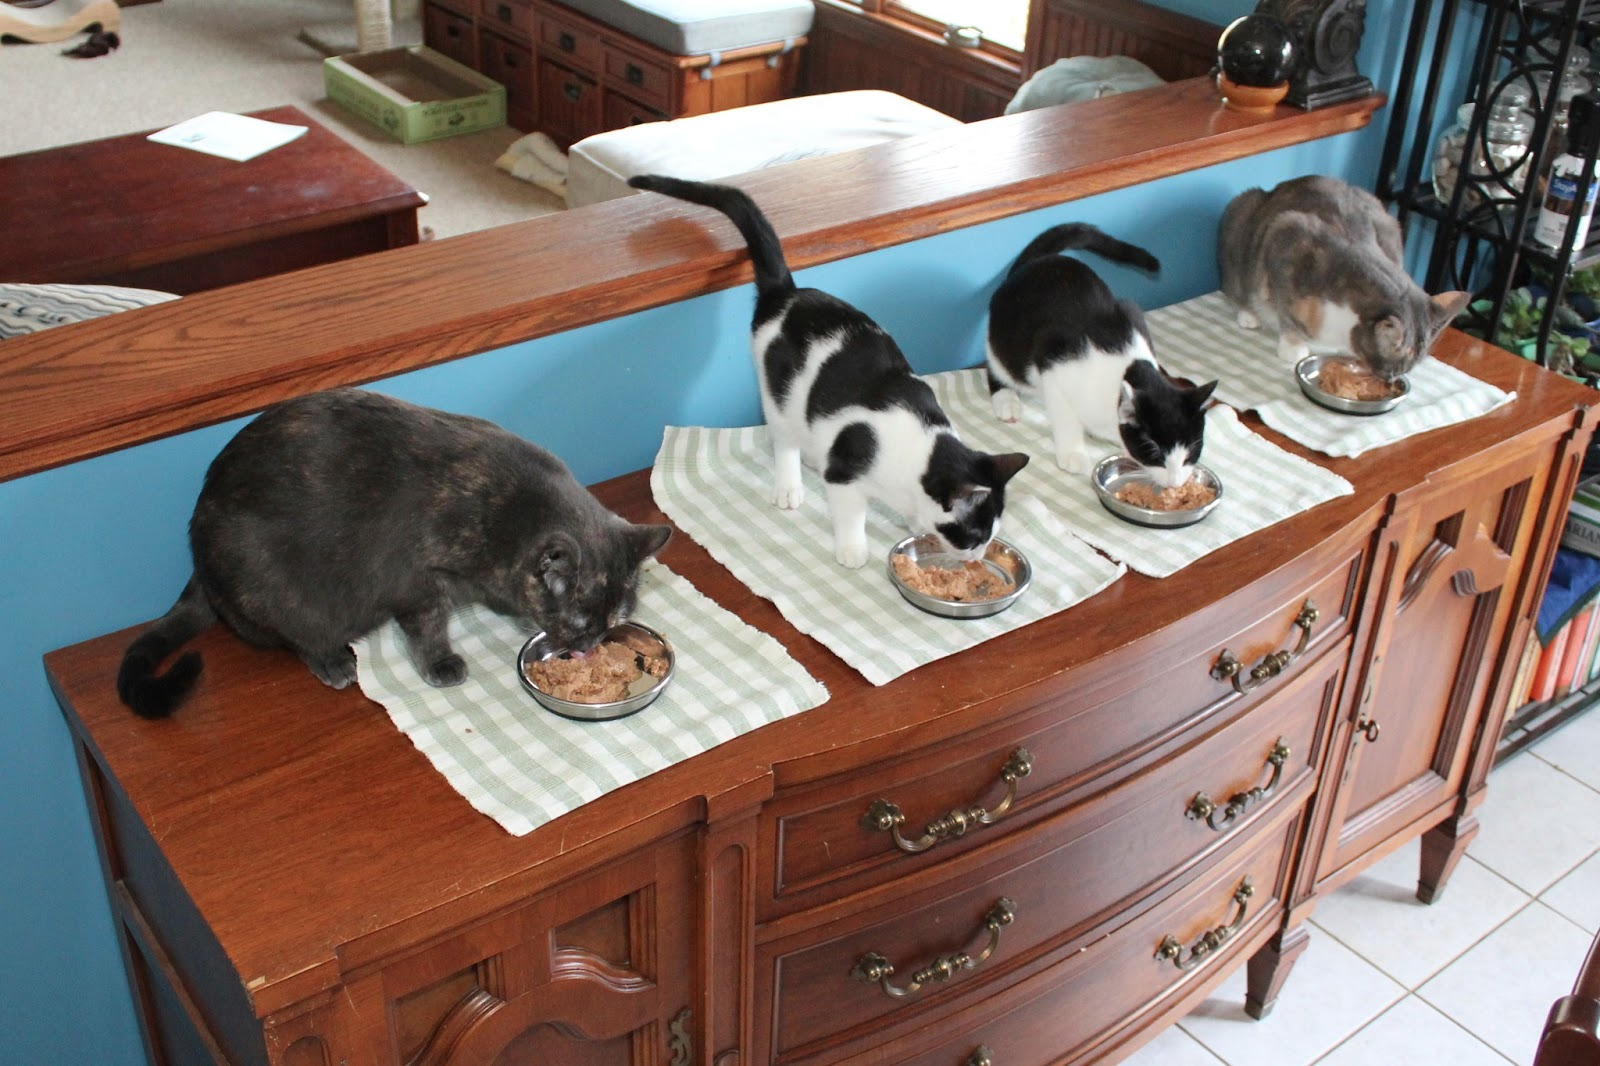 The cat suspects lined up and eating dinner